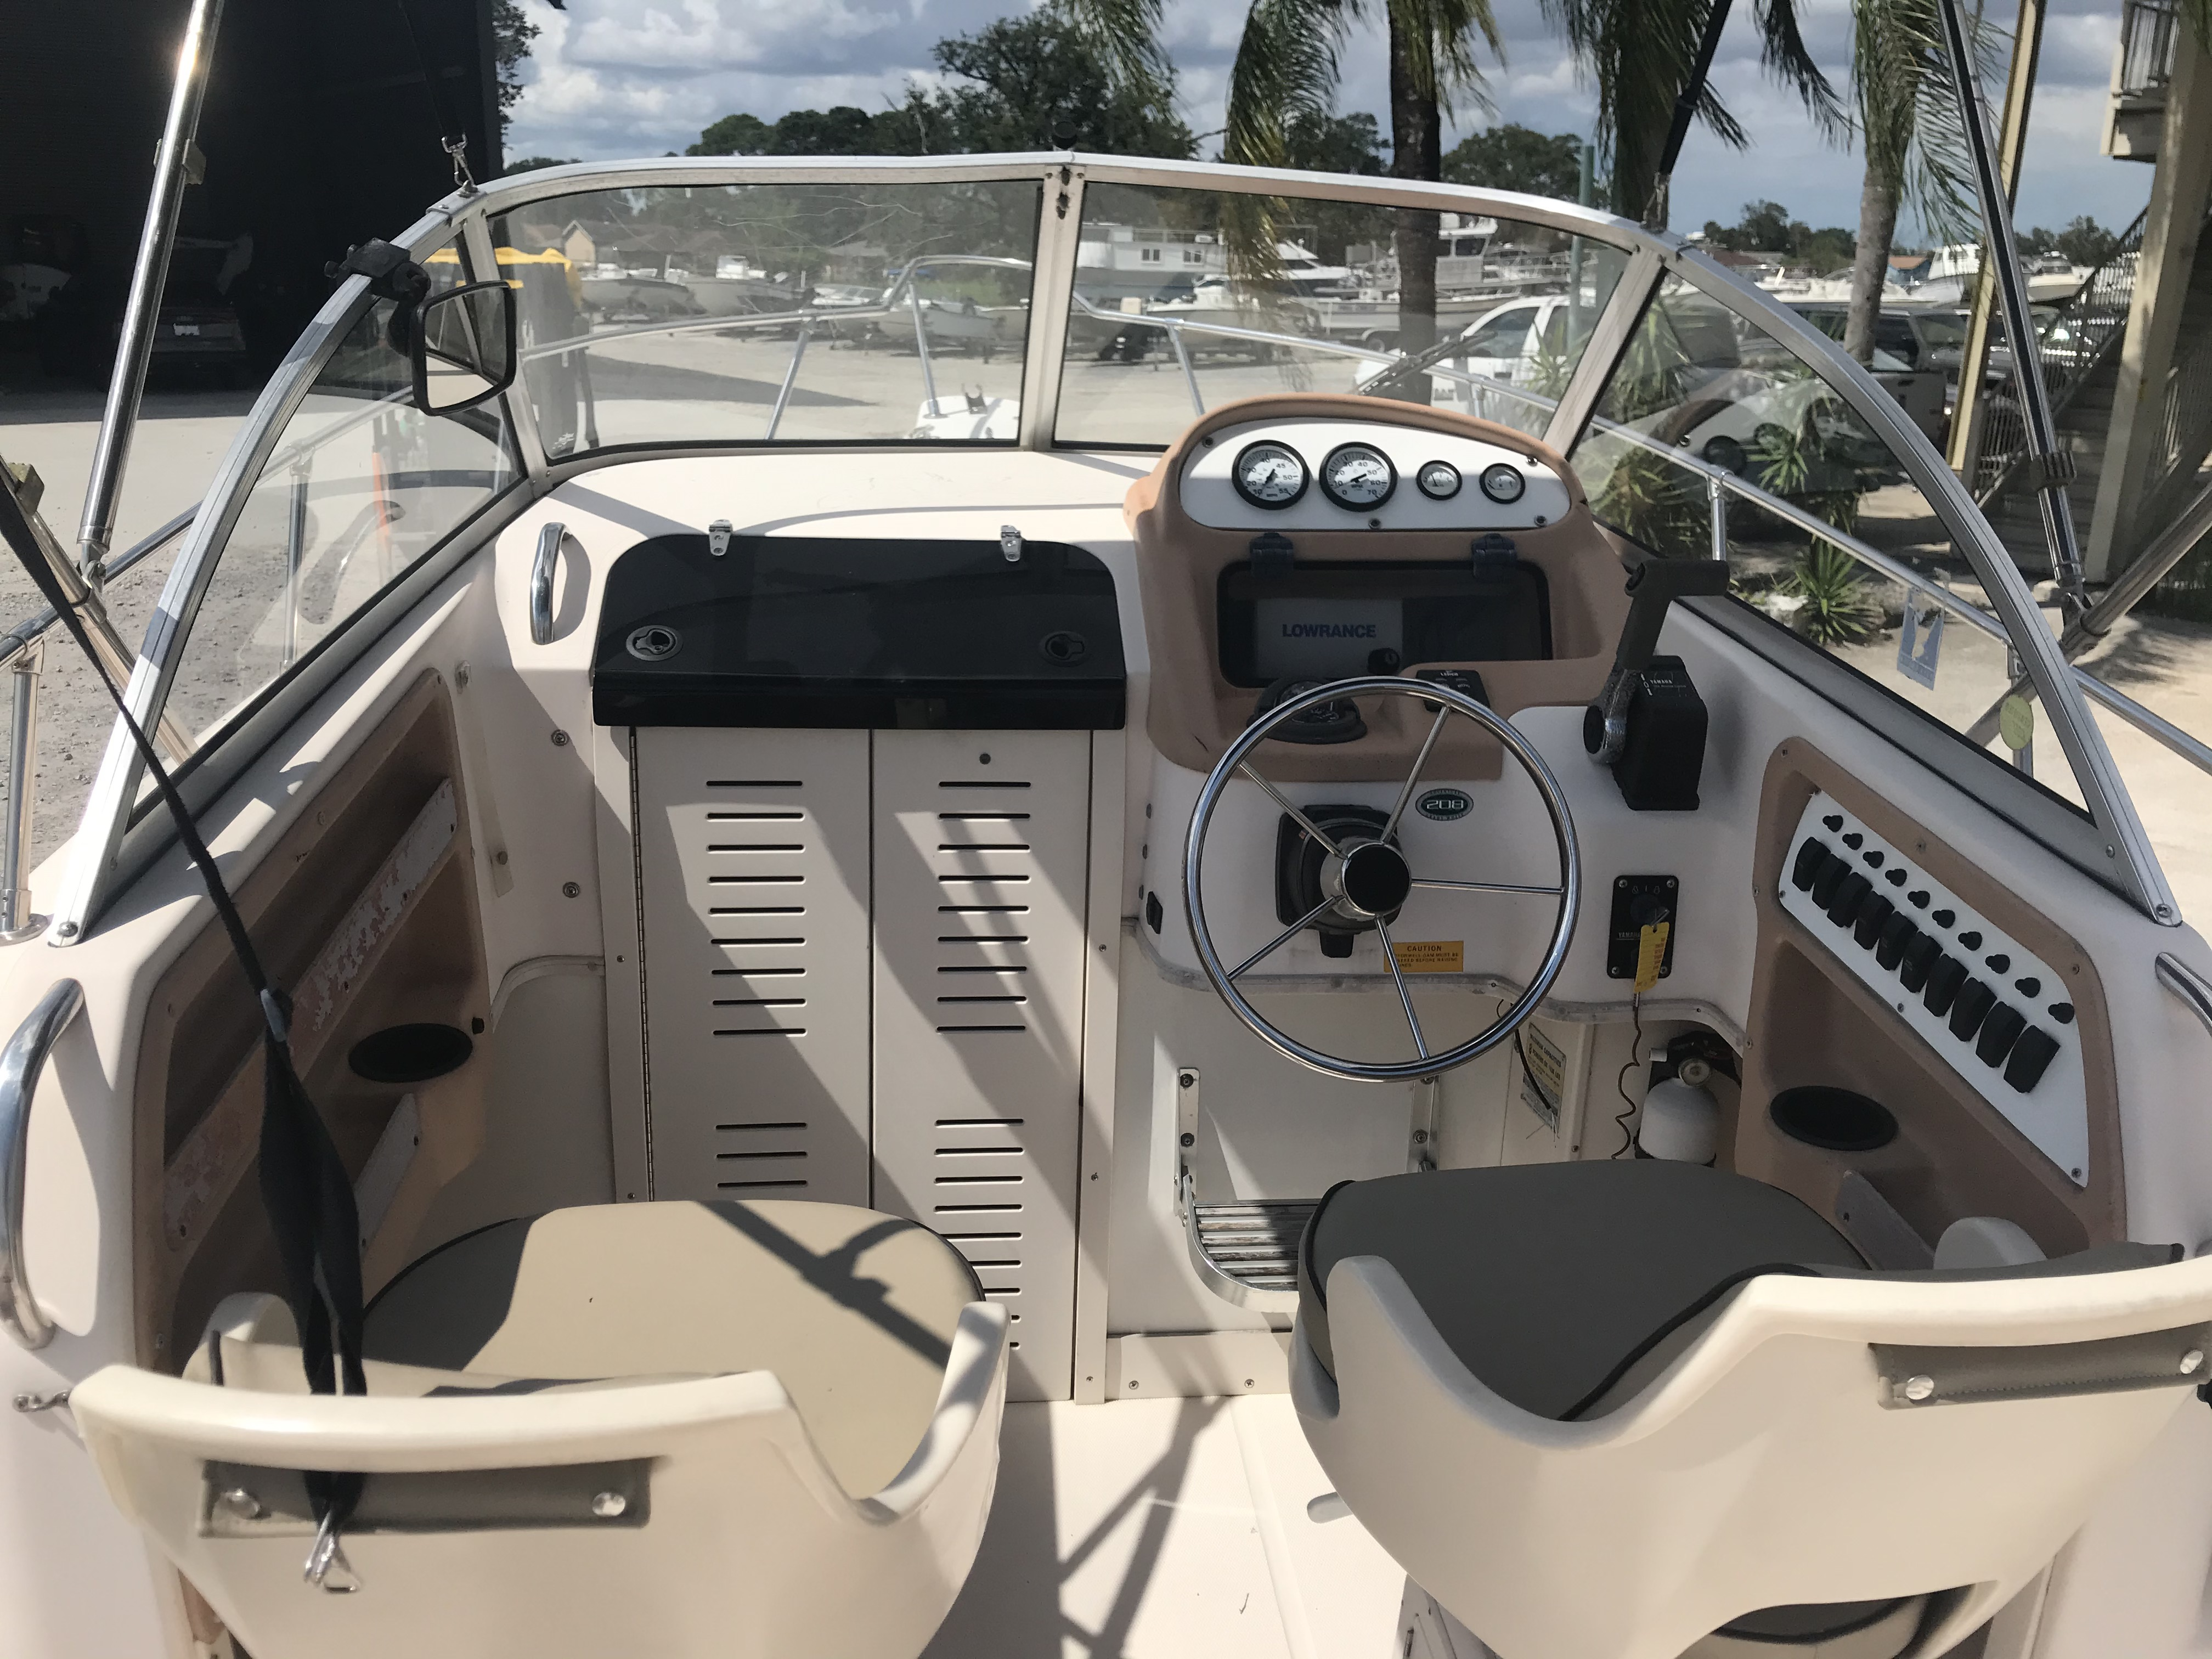 1998 Grady-White boat for sale, model of the boat is Adventure 208 & Image # 14 of 15